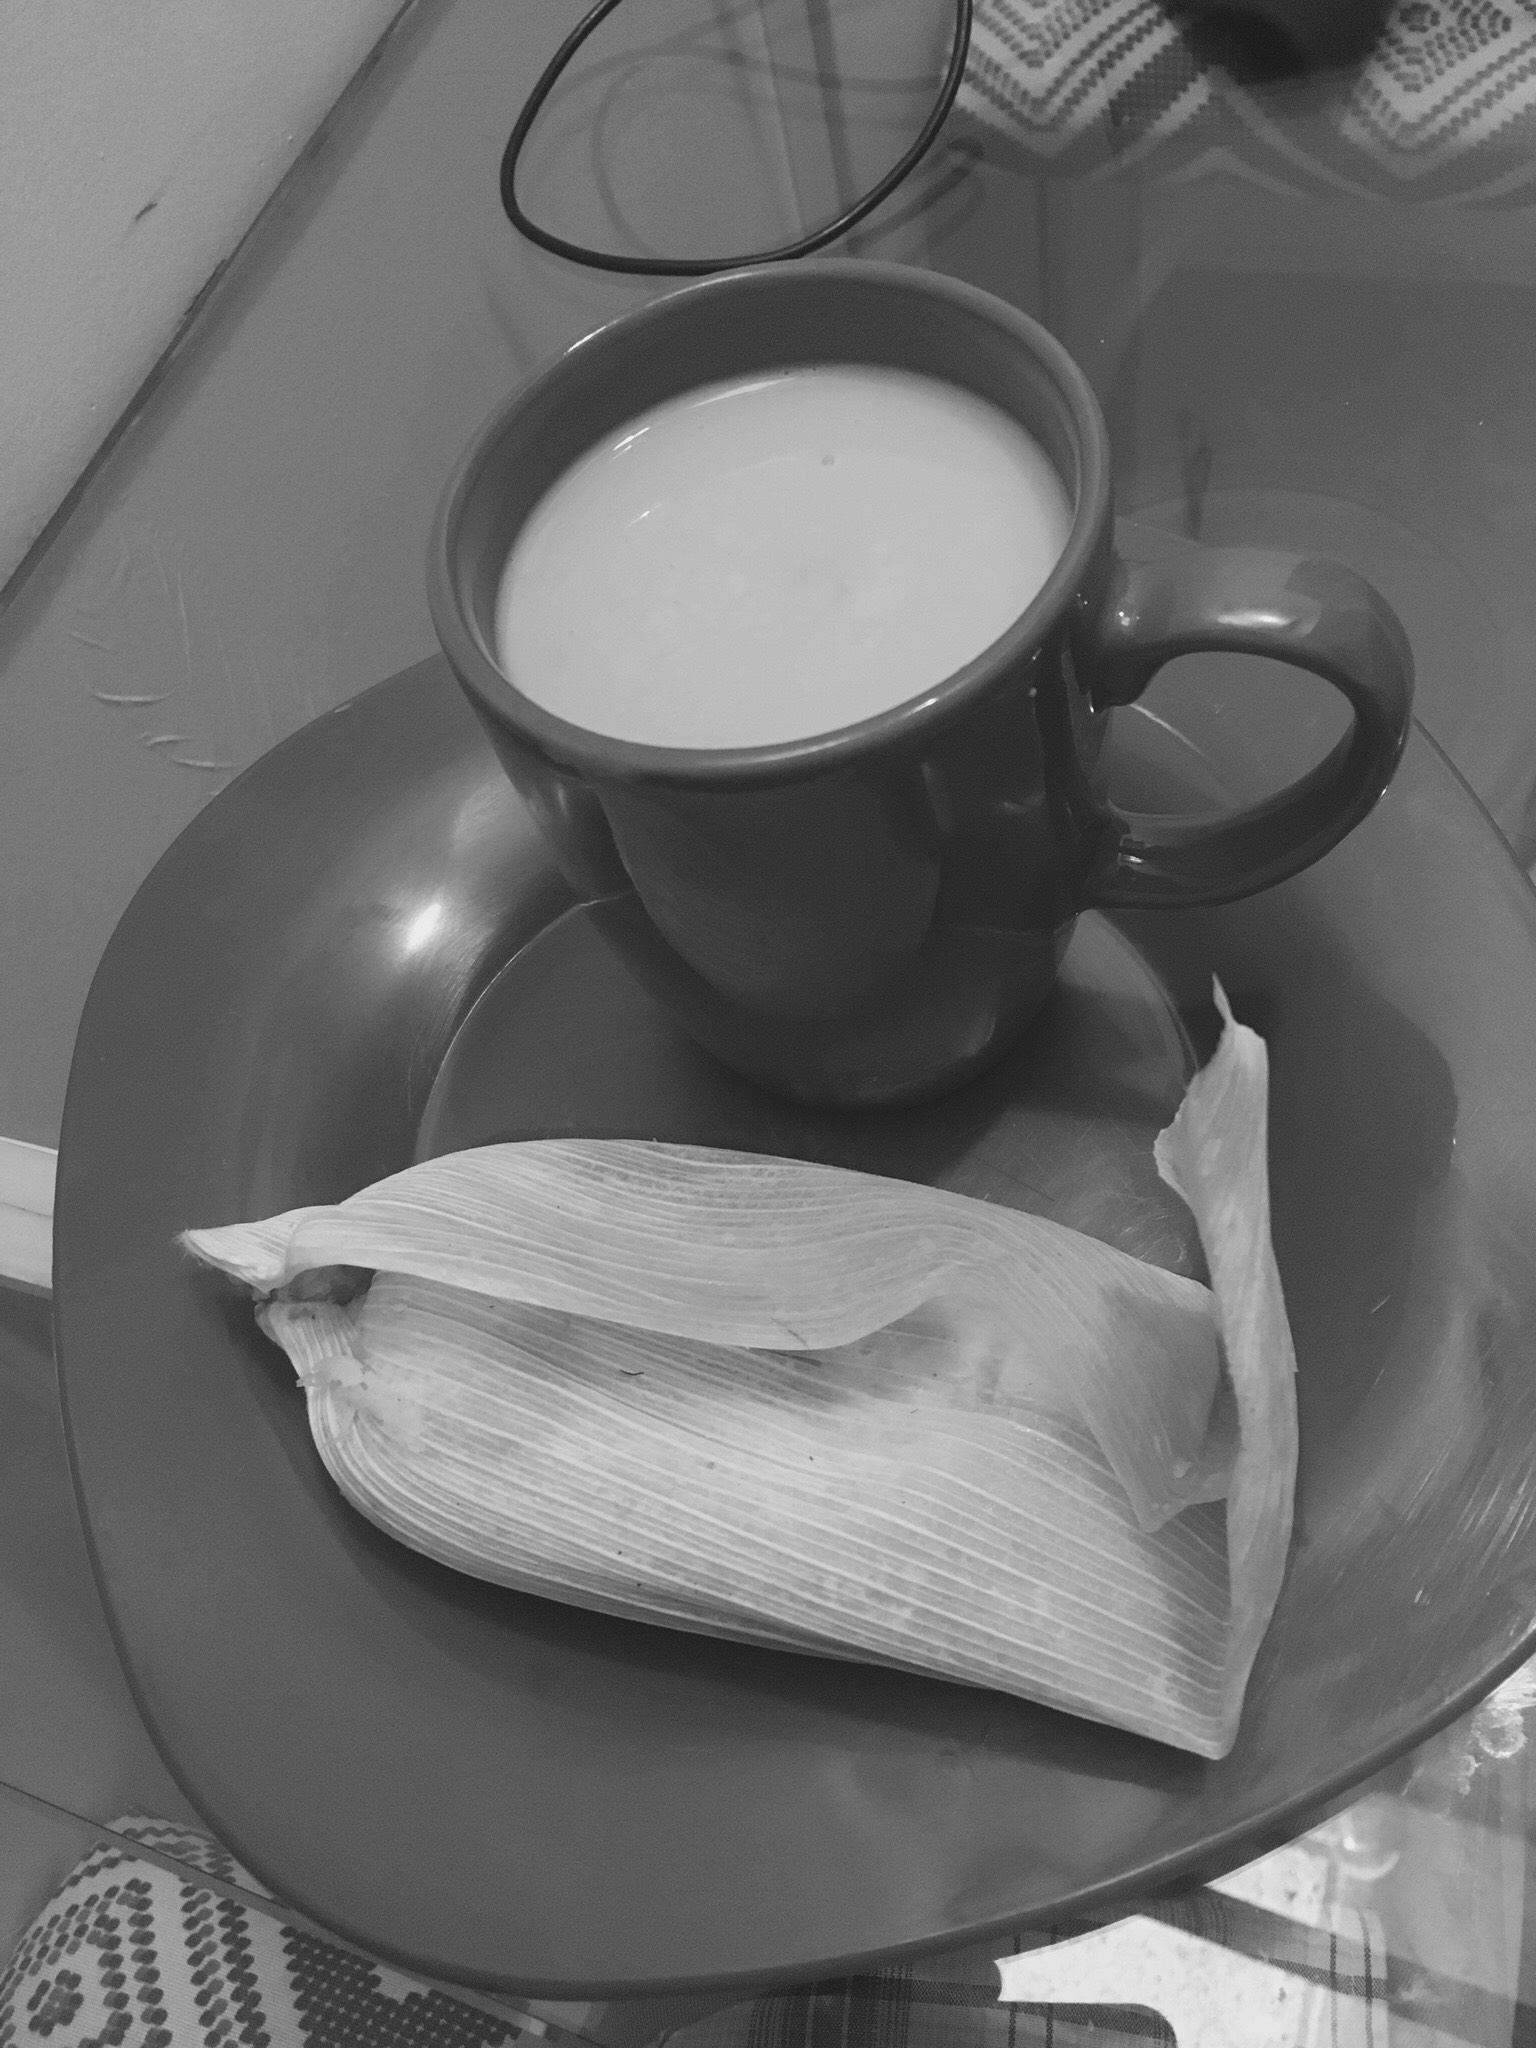 Atole and tamal - black and white